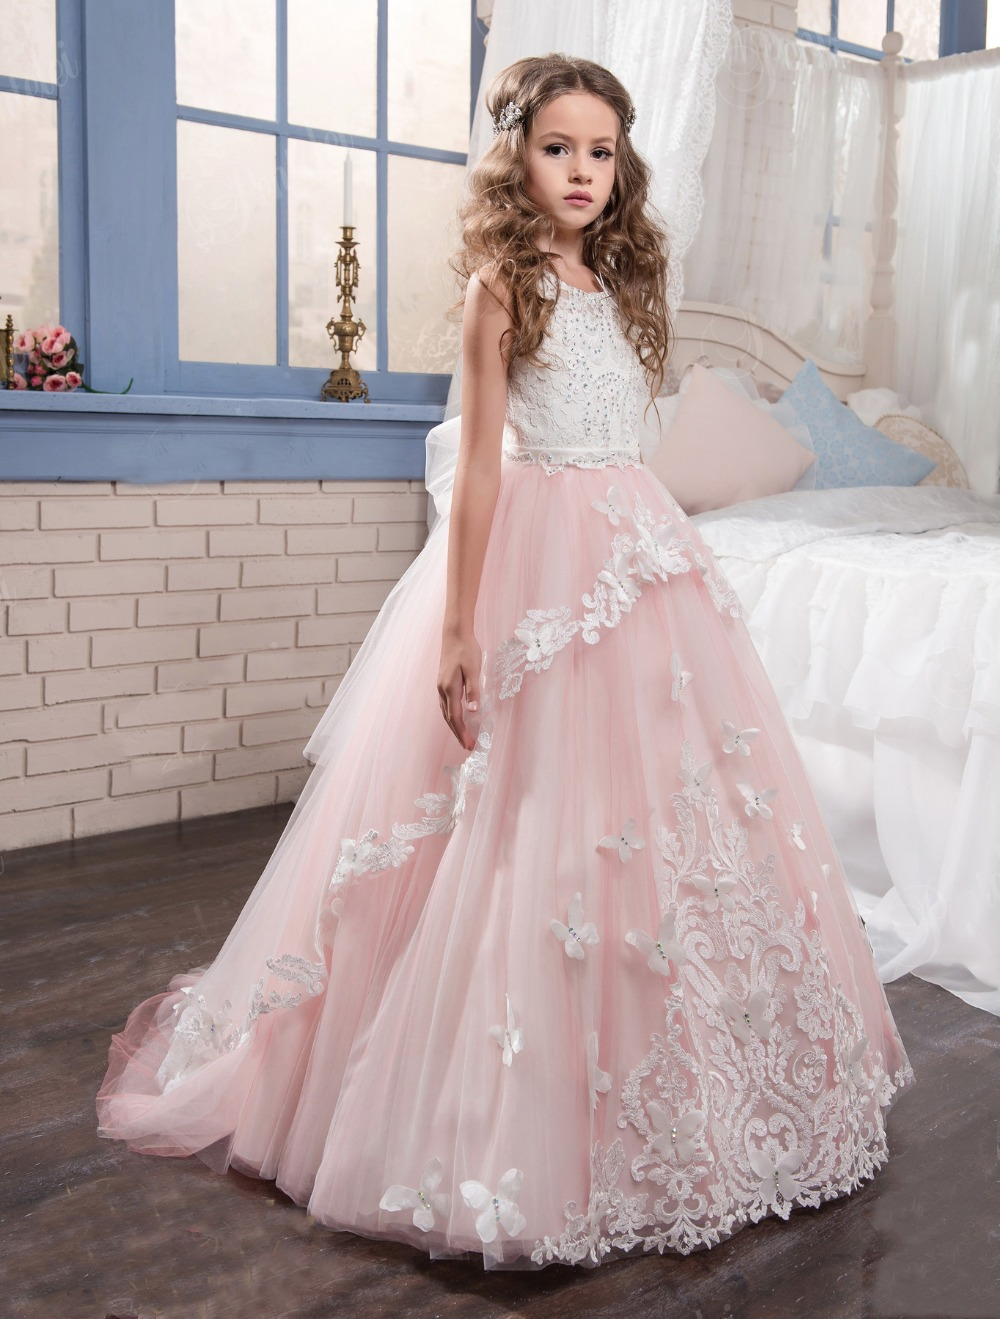 Coral pink beaded flower girl dresses for weddings puffy for Wedding dresses for young girls